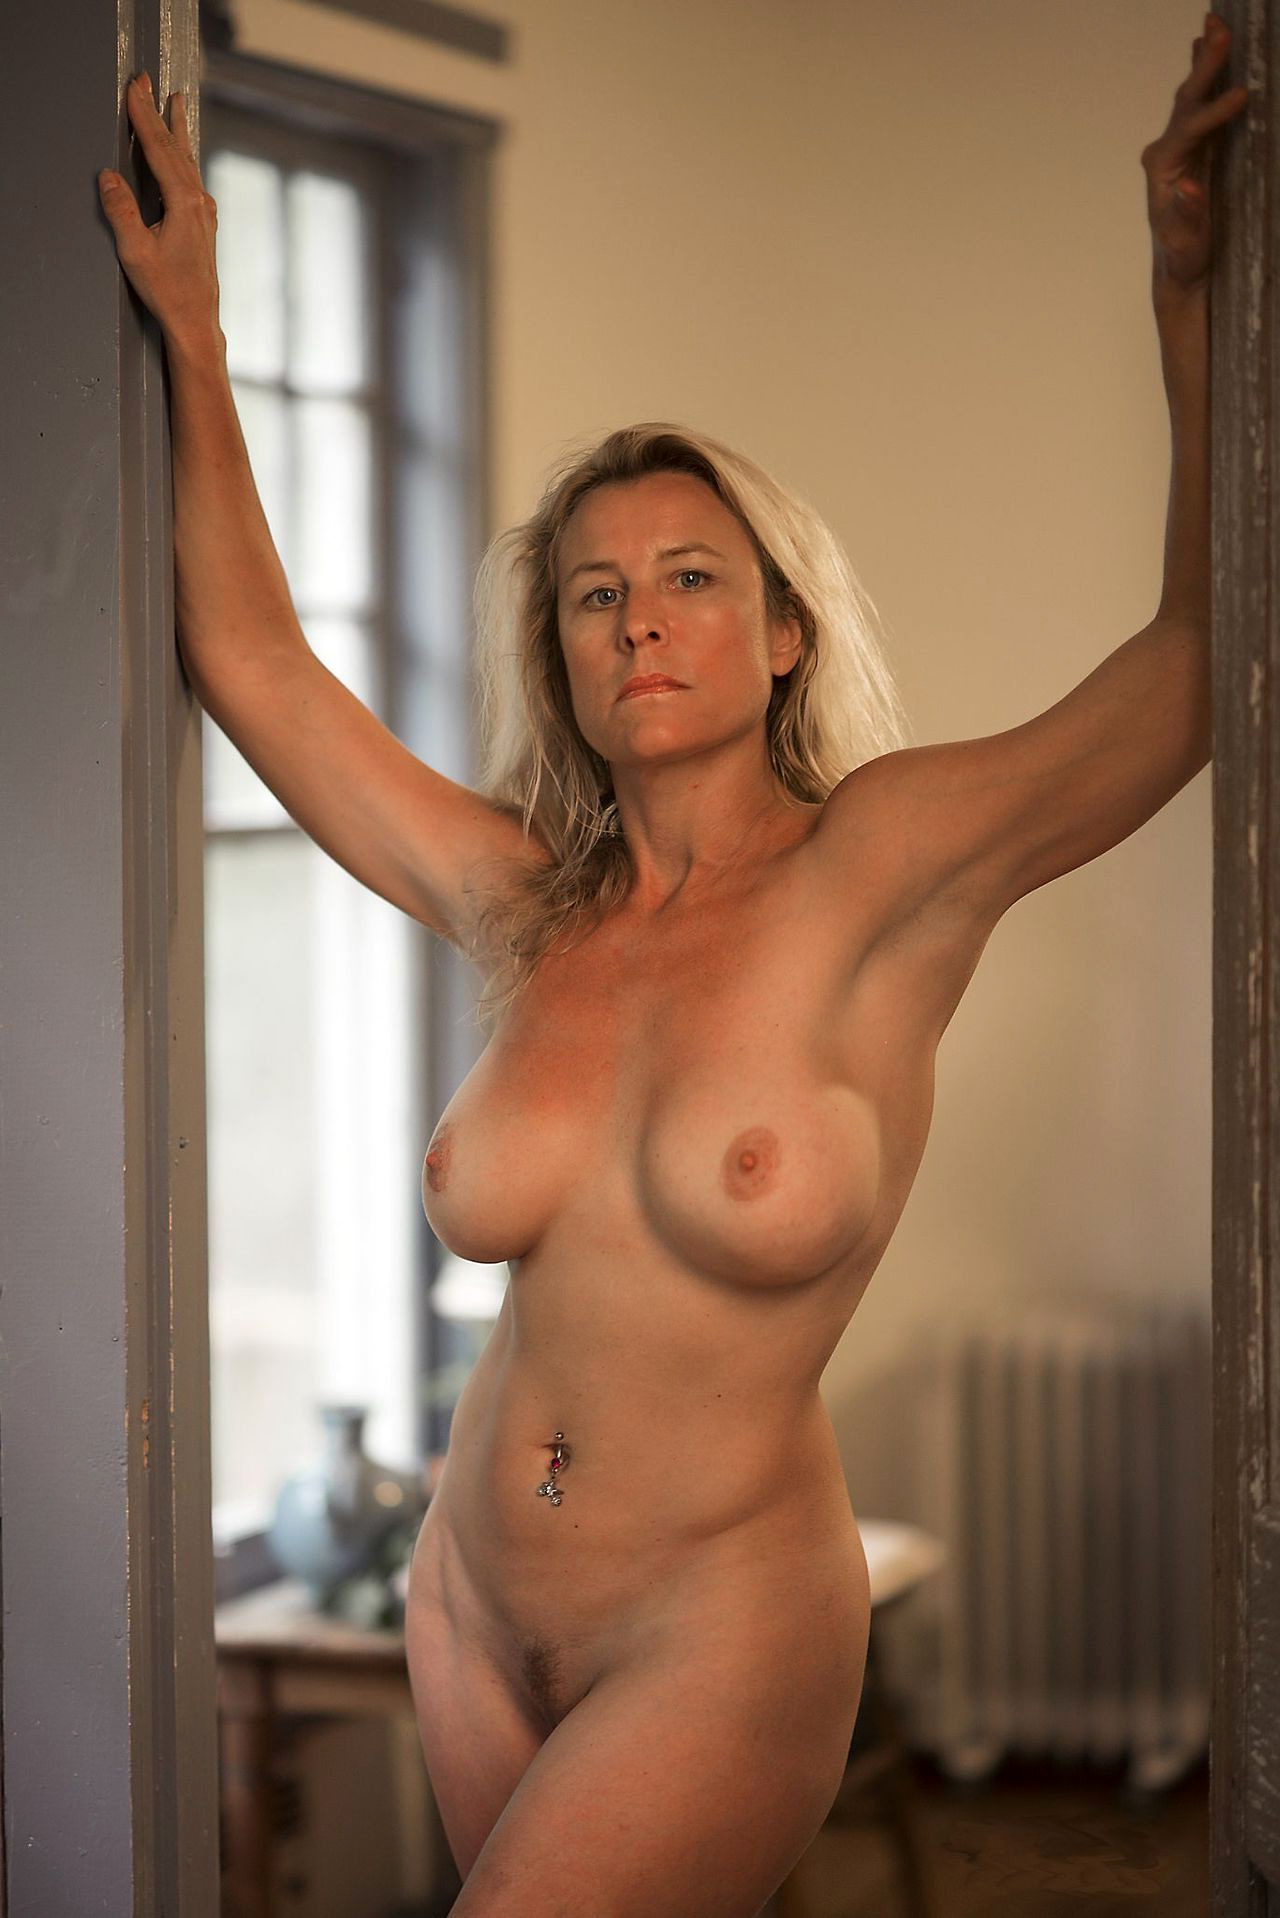 Pics of real women naked